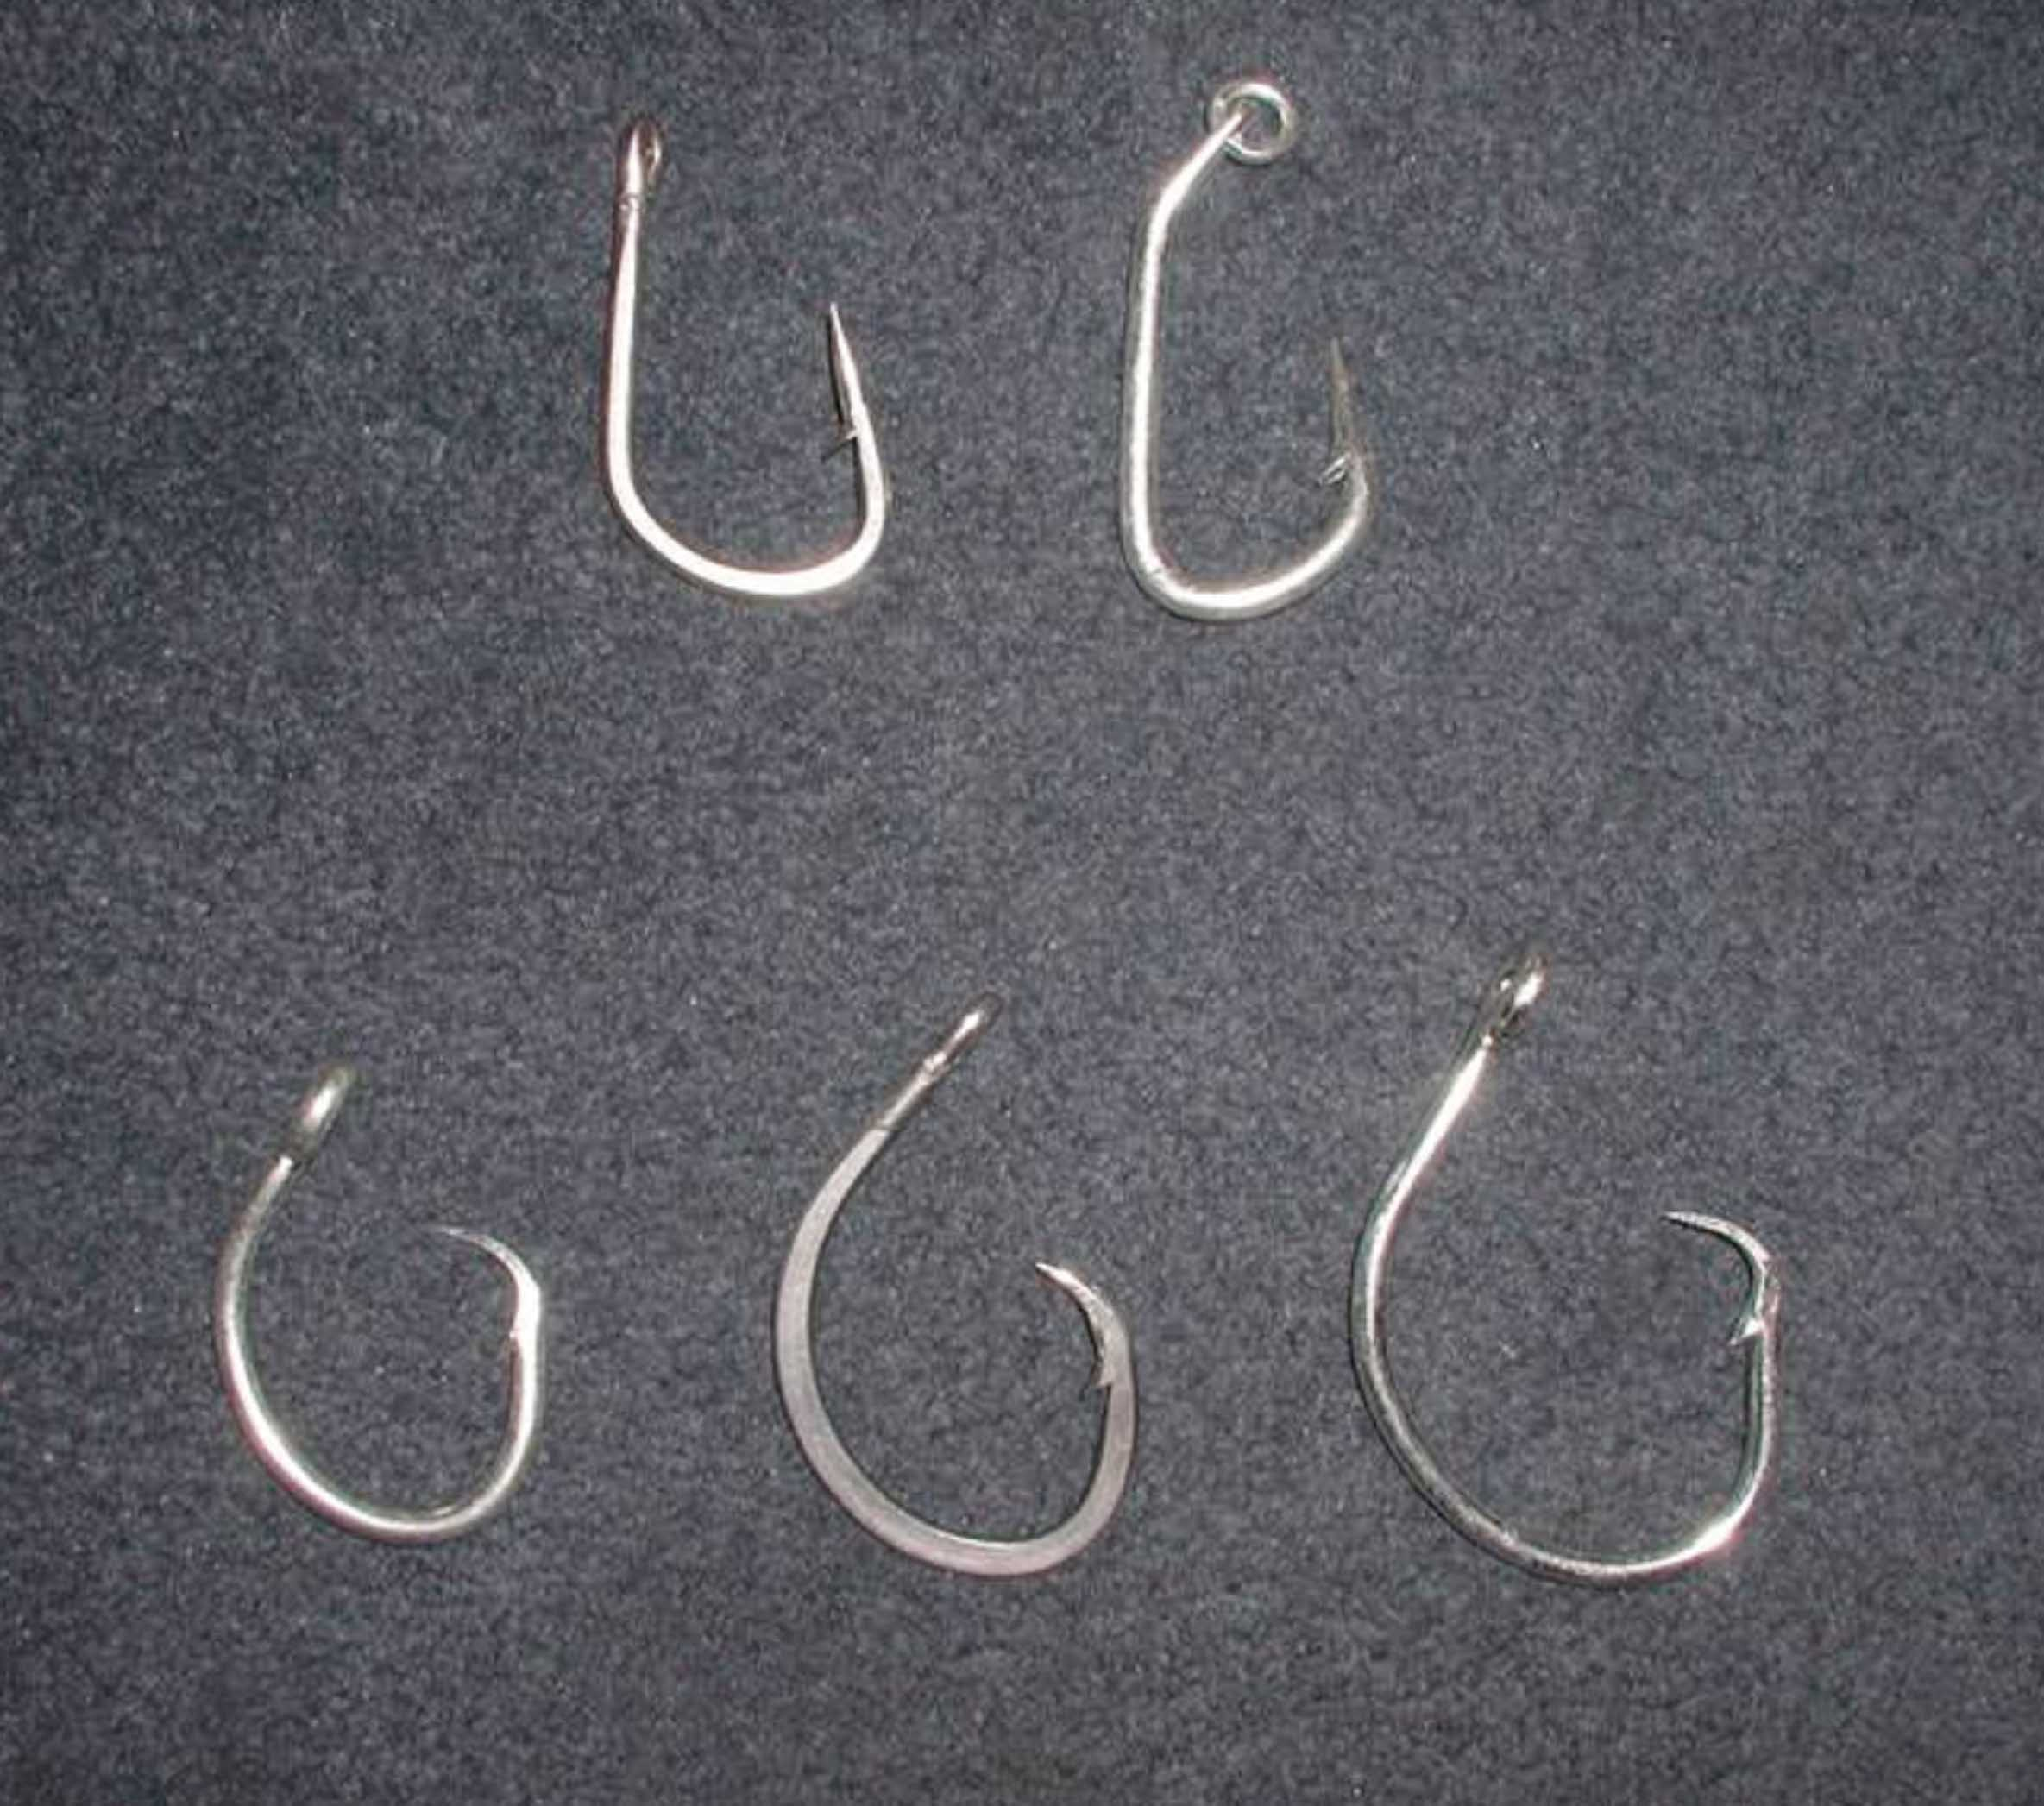 Using circular hooks rather than J-hooks on fishing lines has proven to reduce sea turtle fatality without significantly affecting capture of target fish species. ©NATIONAL MARINE FISHERIES SERVICE